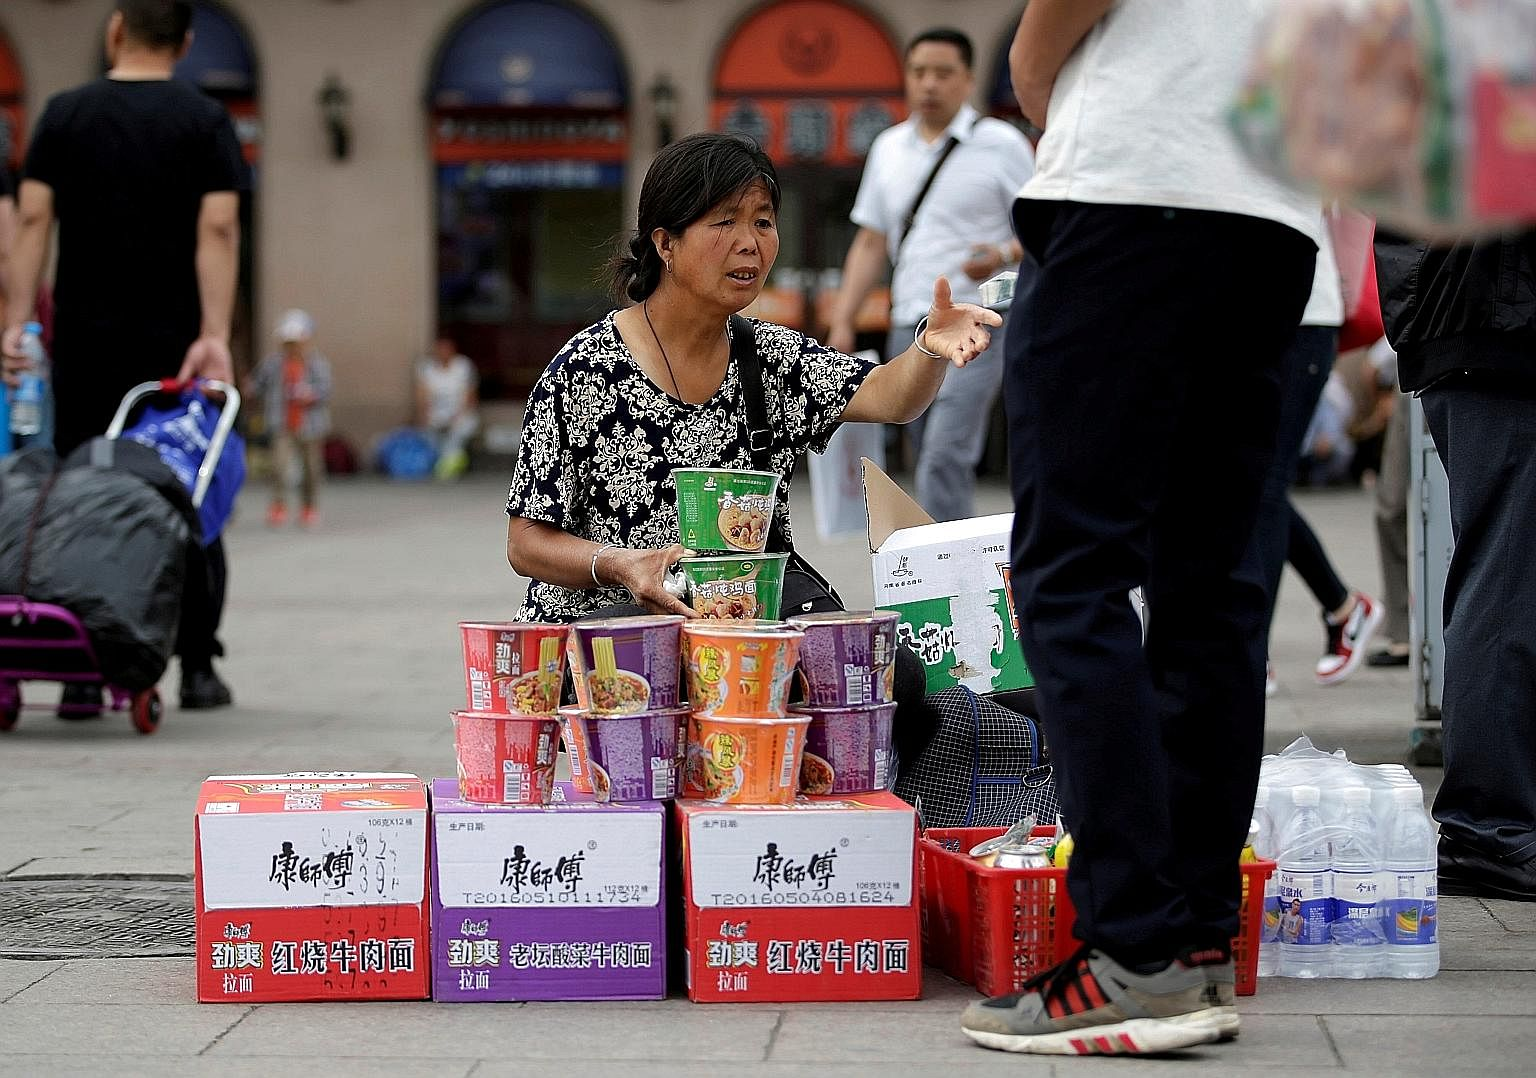 Instant noodles being sold at Beijing Railway Station in China. Just as China's economy has slowed, so too has its appetite for instant noodles.